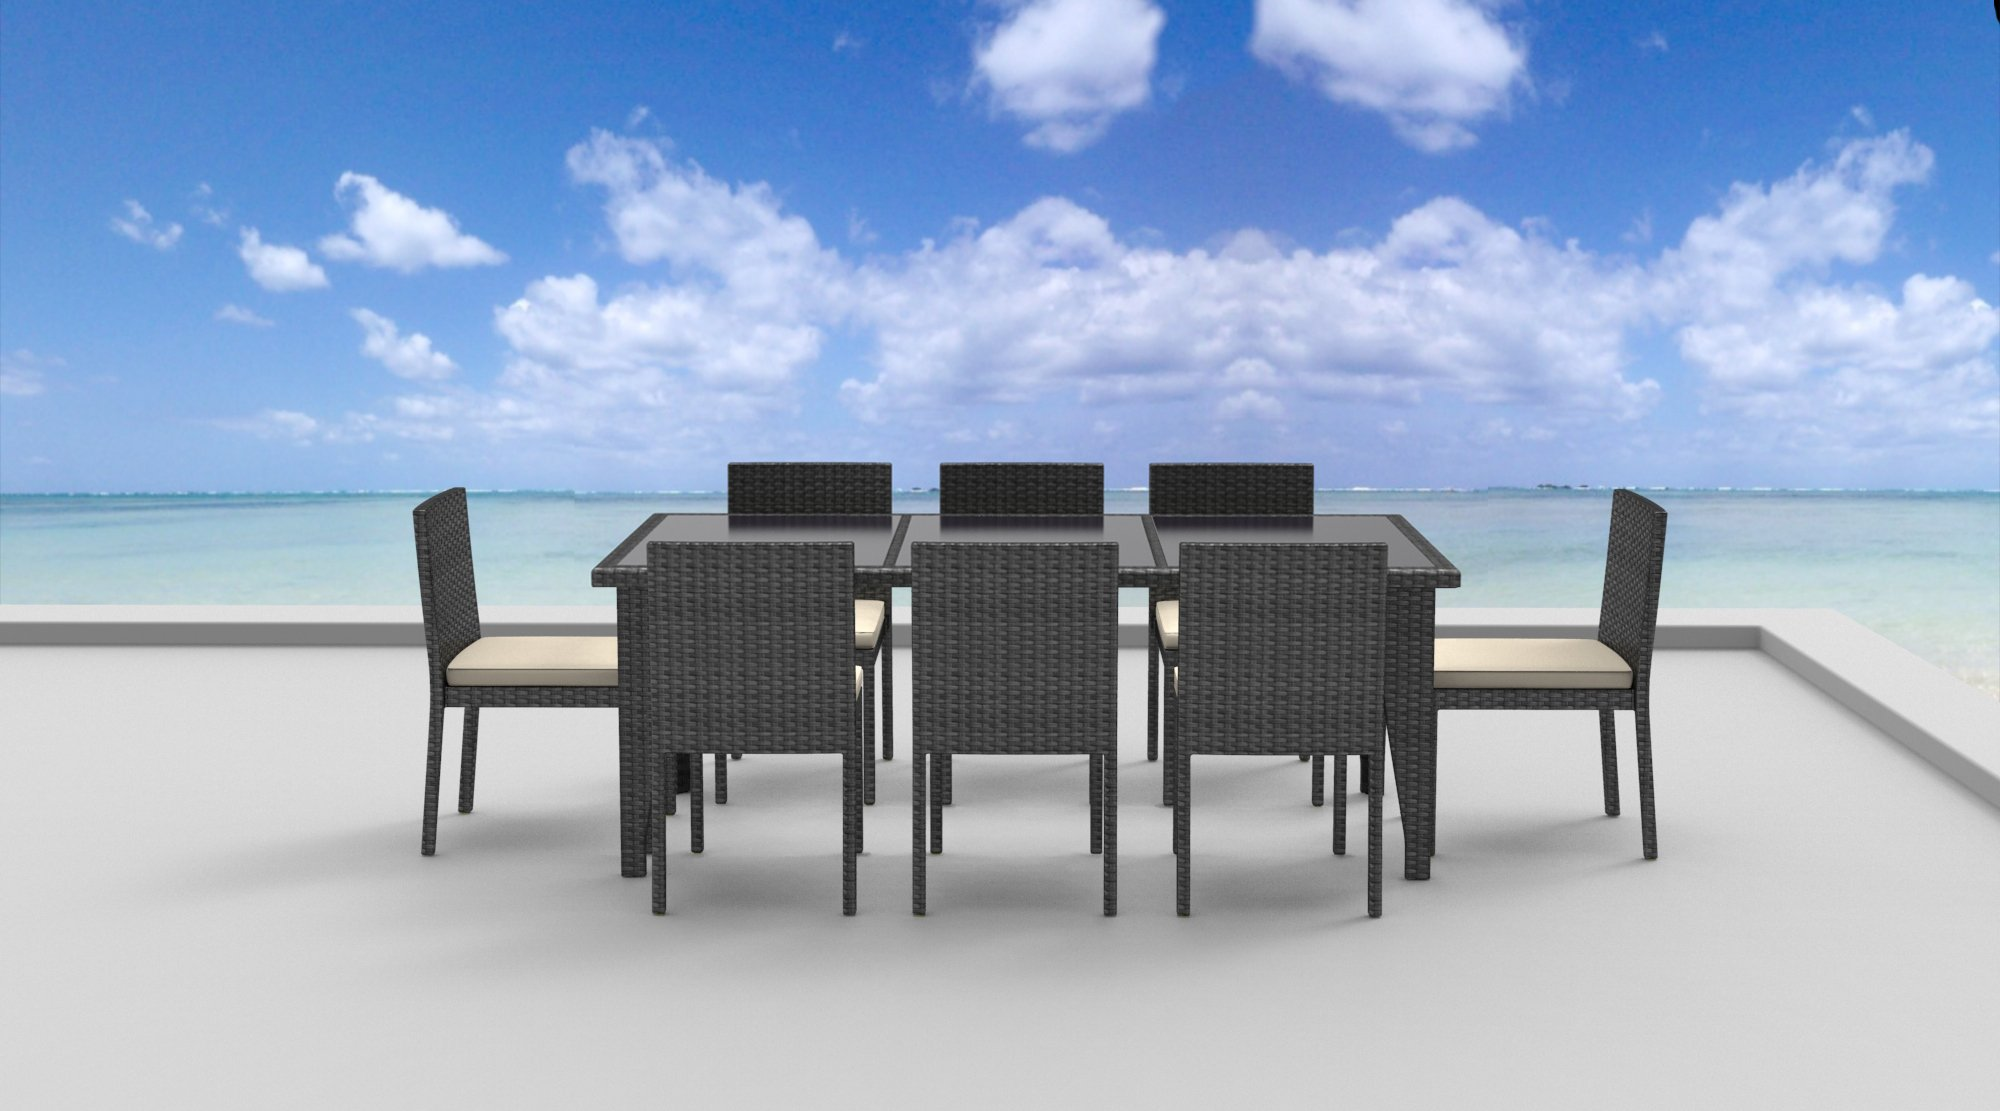 UrbanFurnishing.net - 9 Piece Wicker Outdoor Patio Dining Set - Gray Wicker/Beige - Sleek Ultra Modern Wicker Design with Gradient Shades of Grays Chairs are stackable and comes with detachable cushions. Cushions are comfortable, water resistant and easy to maintain with built-in zipper for easy removal and cleaning. - patio-furniture, dining-sets-patio-funiture, patio - 71P6S9y TXL -